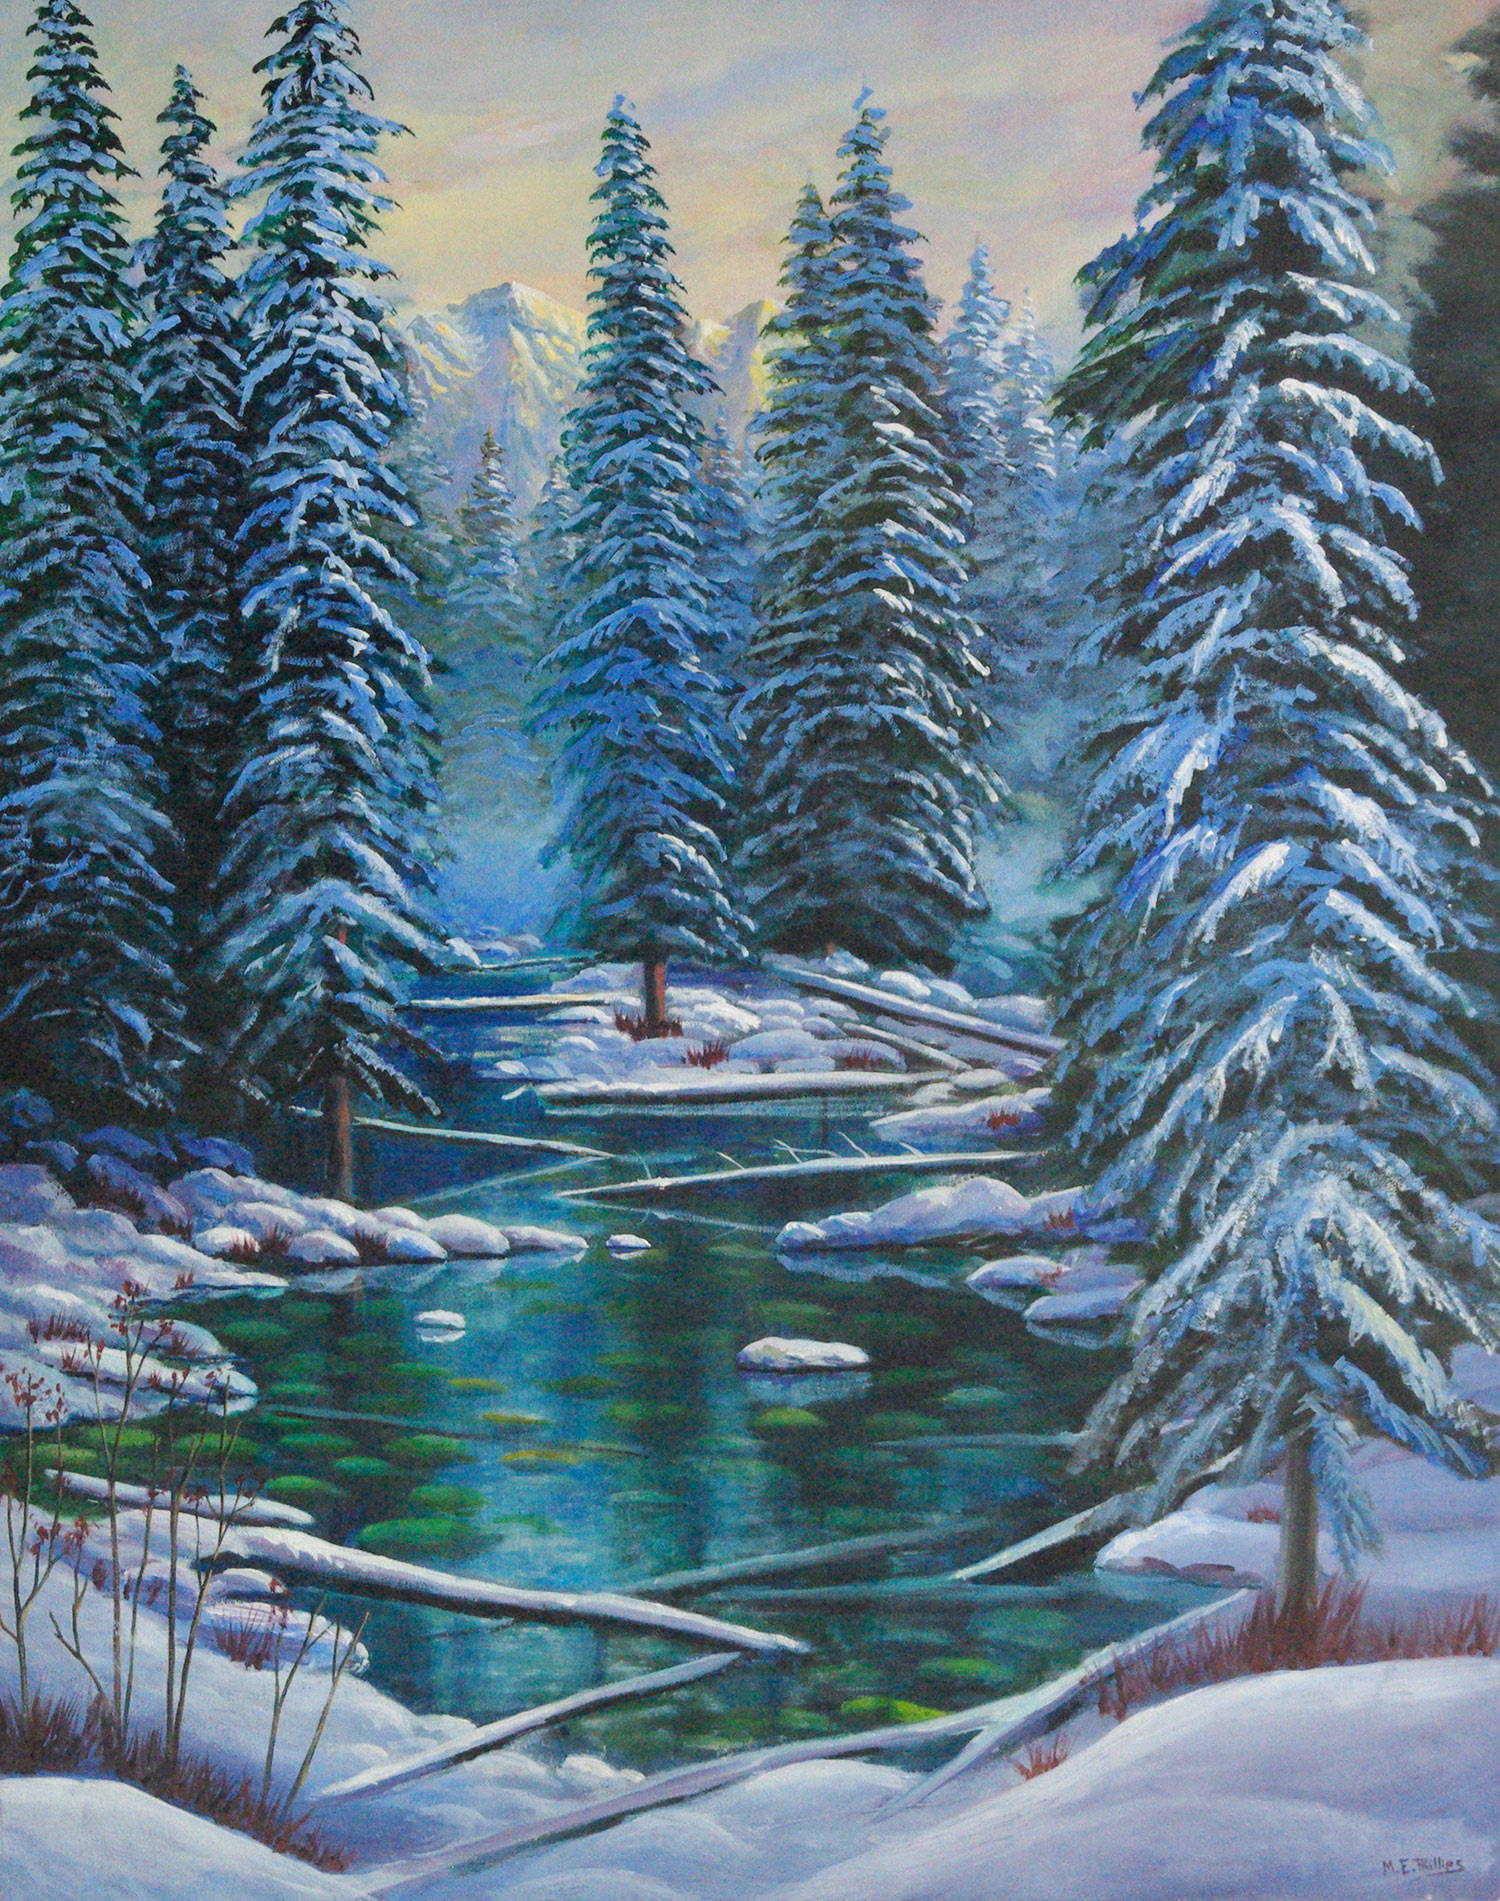 October-Snow_$3850-Framed-Oil-24x30